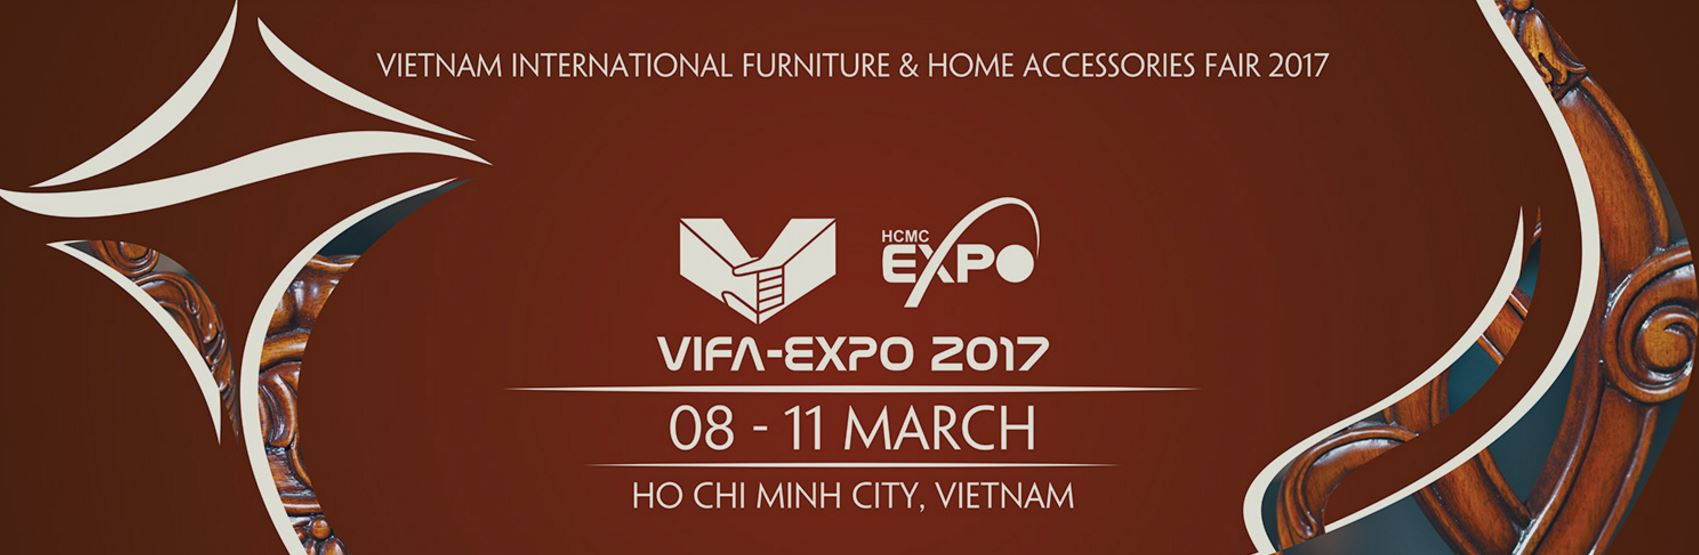 Vietnam International Furniture And Home Accessories Fair 2017 Ukabc